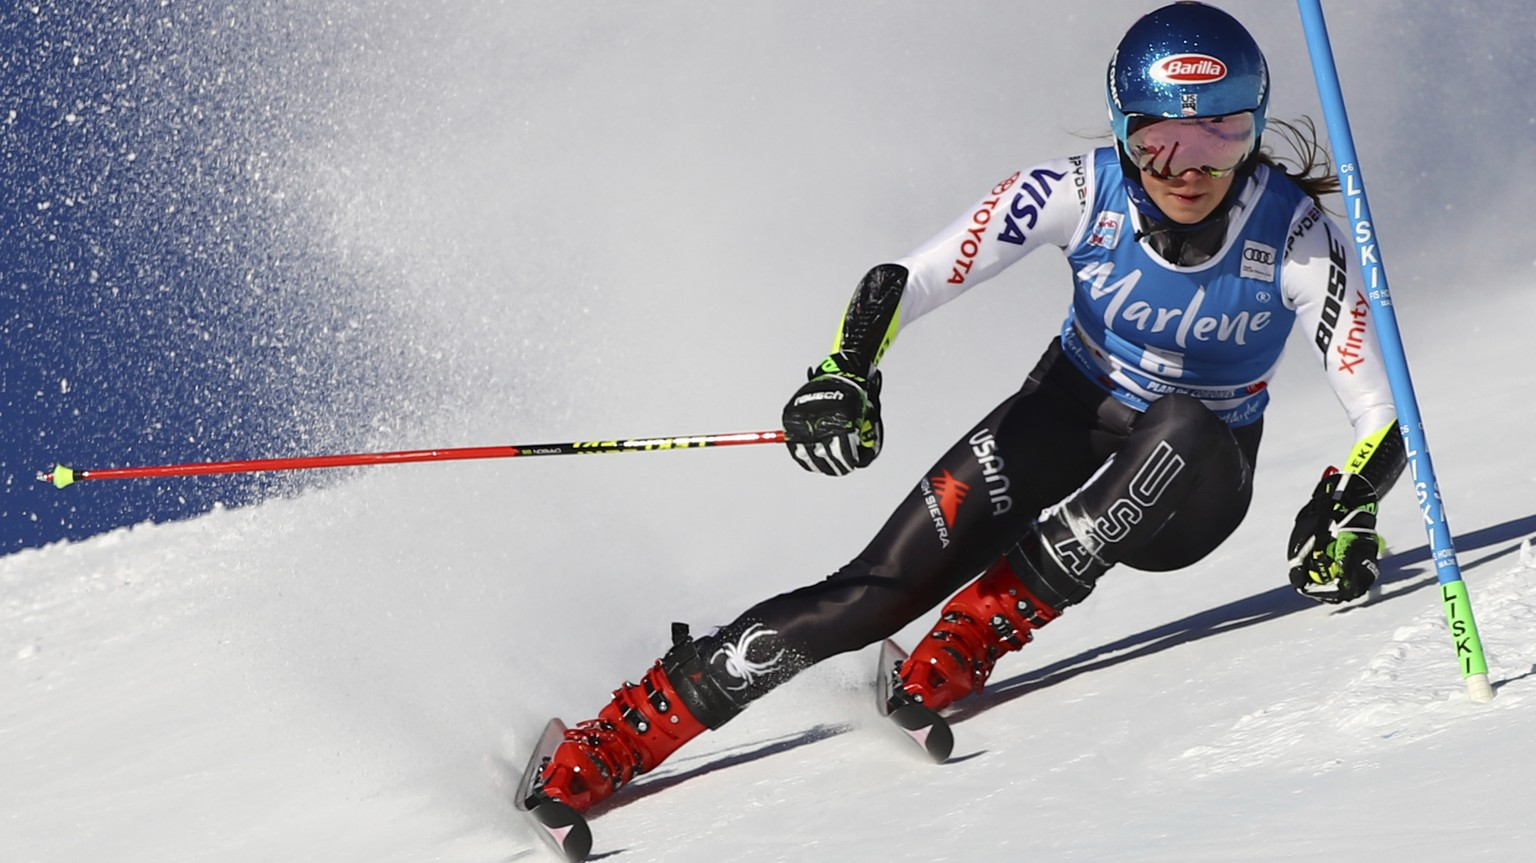 United States' Mikaela Shiffrin competes during an alpine ski, women's World Cup giant slalom, in Kronplatz, Italy, Tuesday, Jan. 15, 2019. (AP Photo/Marco Trovati)